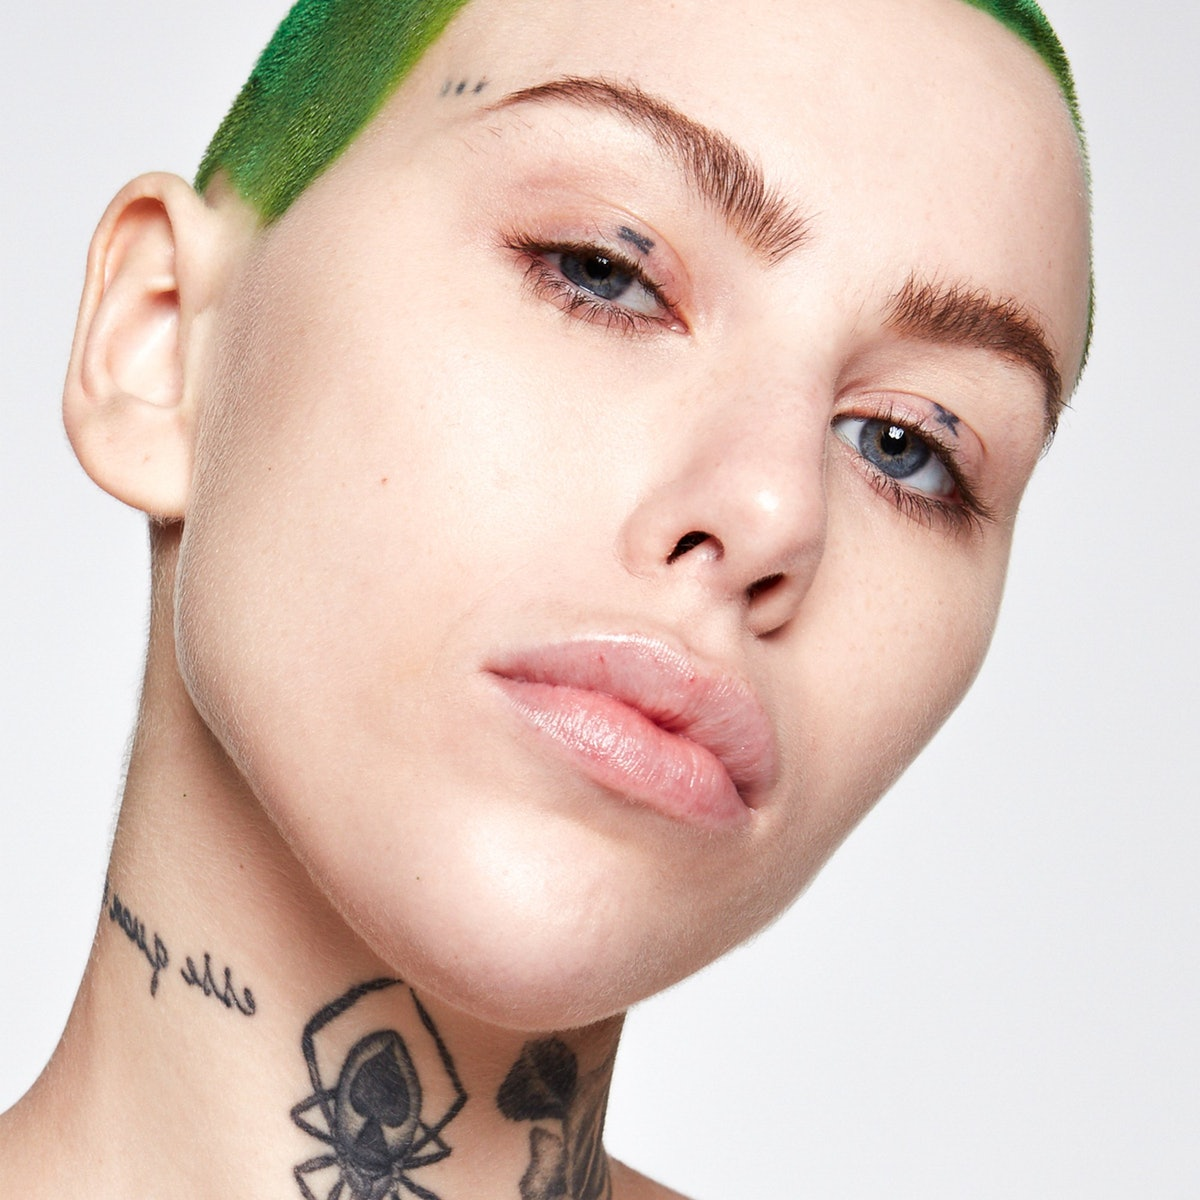 A model with tattoos and green hair modeling Kosas Tinted Face Oil, one of several skin tints that are best for lightweight coverage.